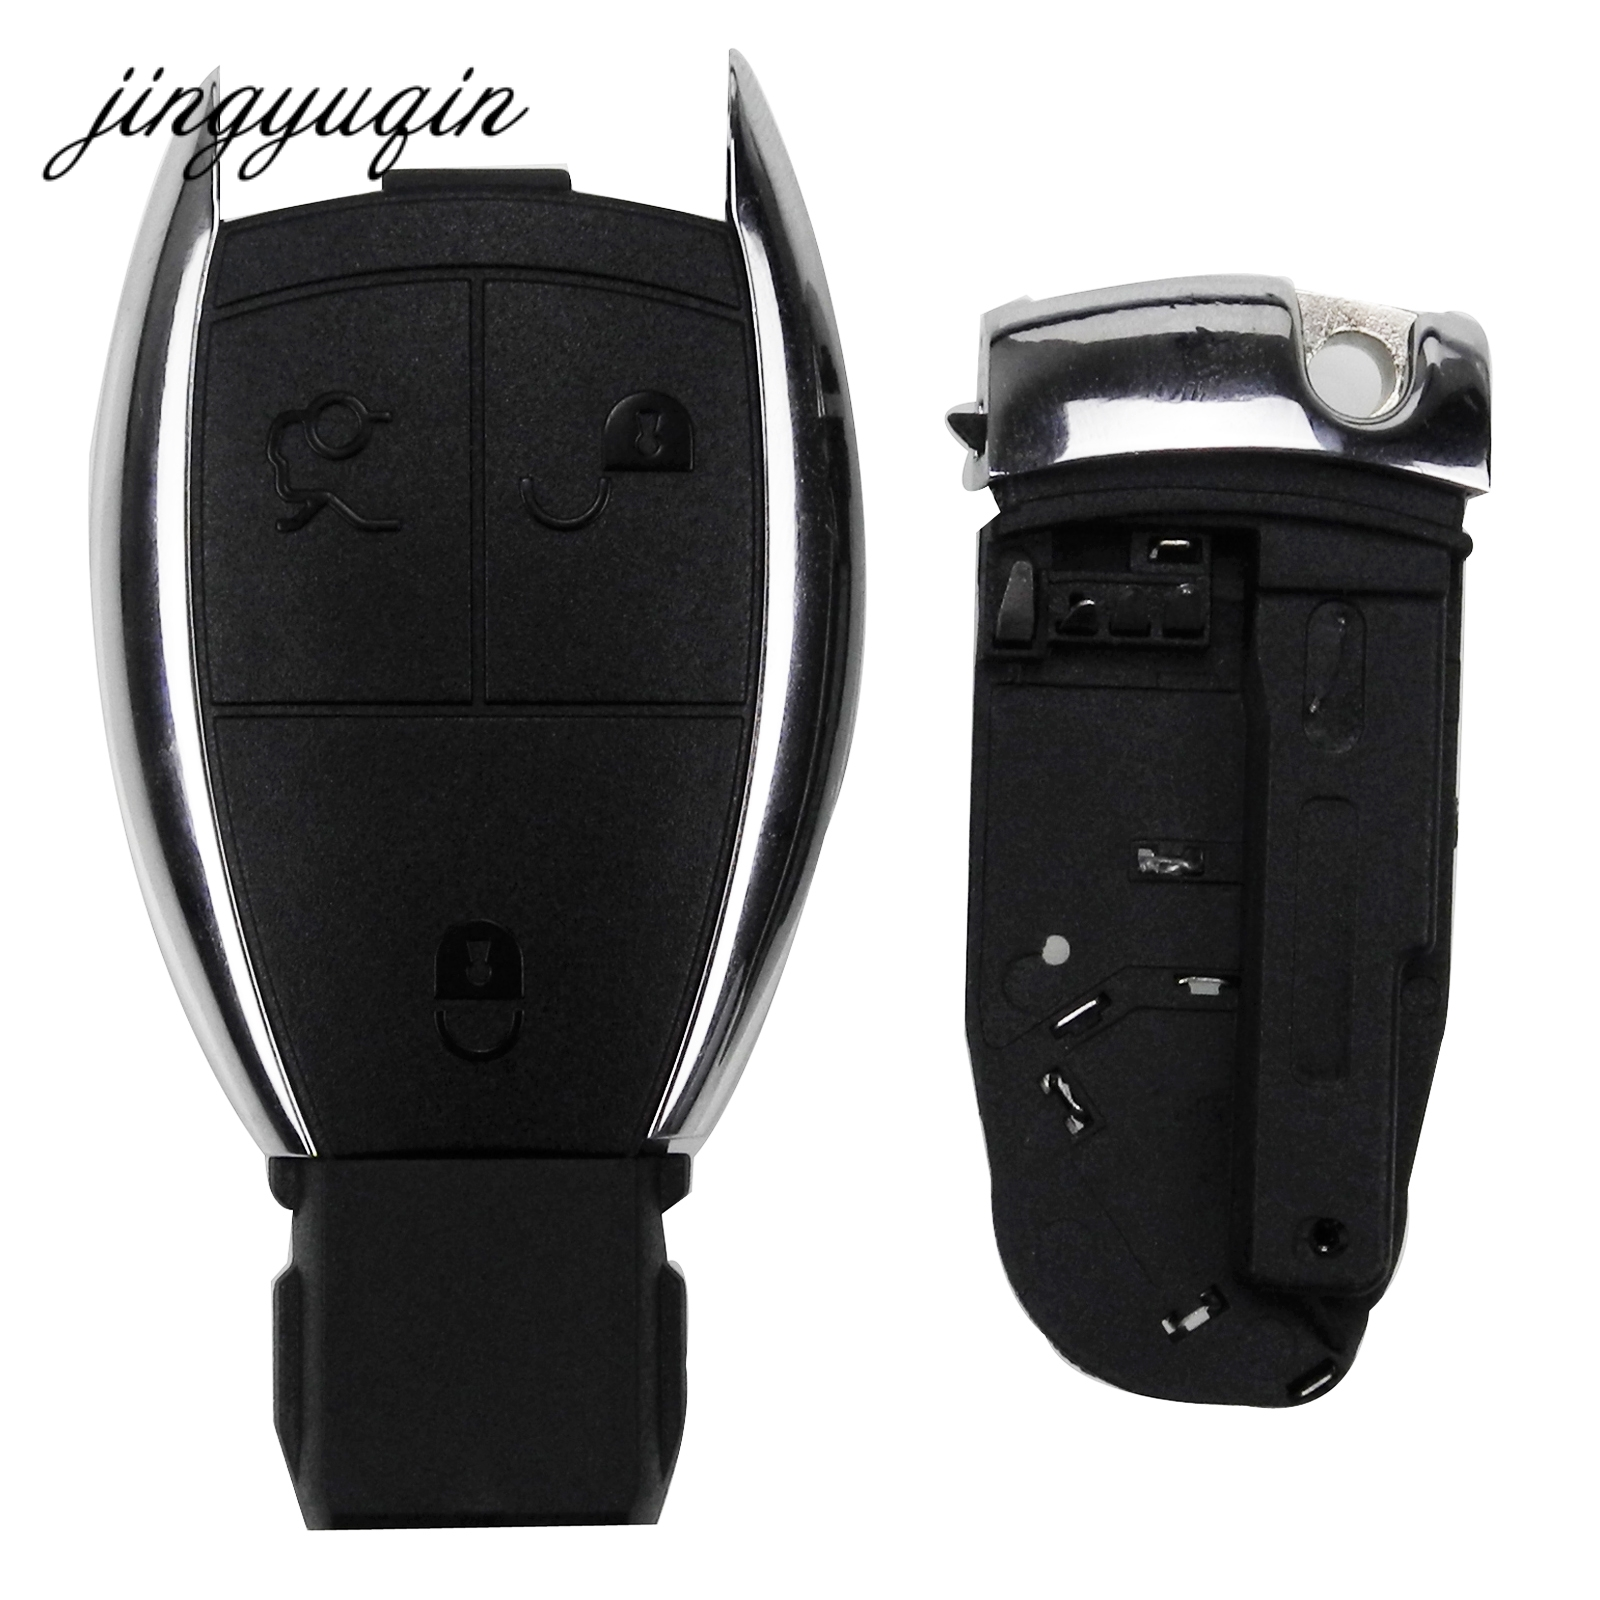 jingyuqin for MERCEDES 3 Button Remote Car Key Case Fob Shell for BENZ C E R S CL GL SL CLK SLK W203 fob + Battery Holder Clamp цена